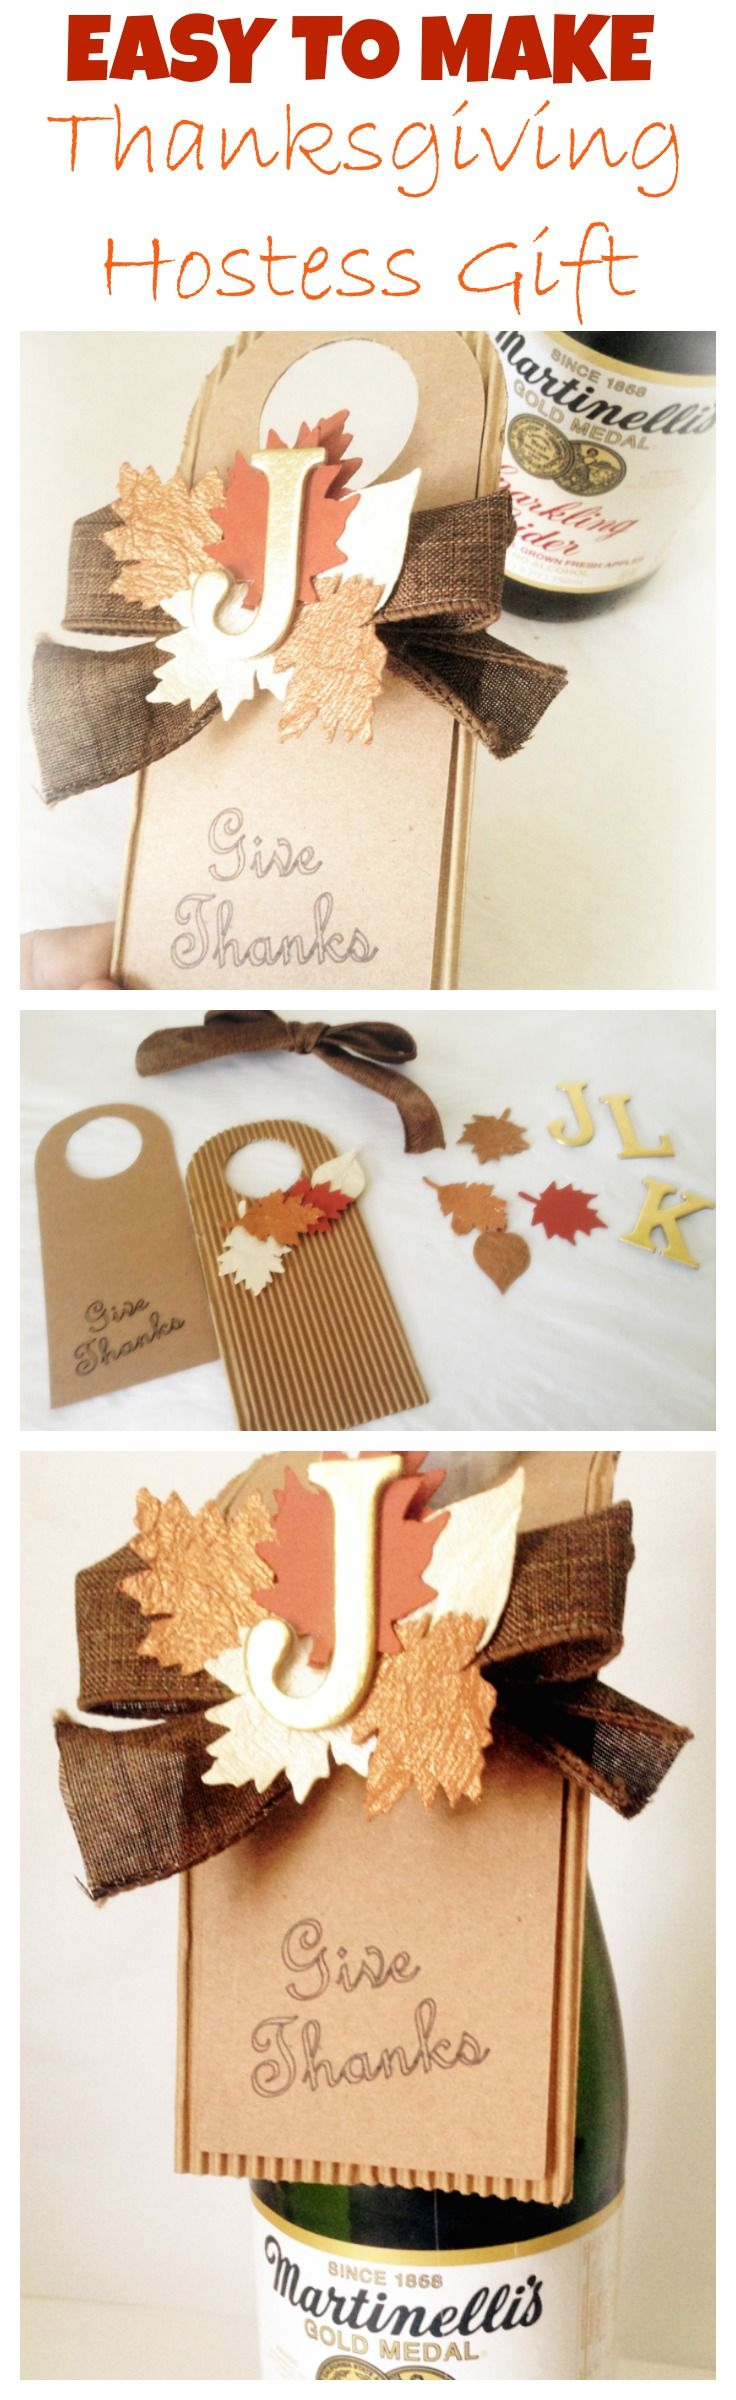 Quick and Easy Thanksgiving Hostess Gift Idea. DIY